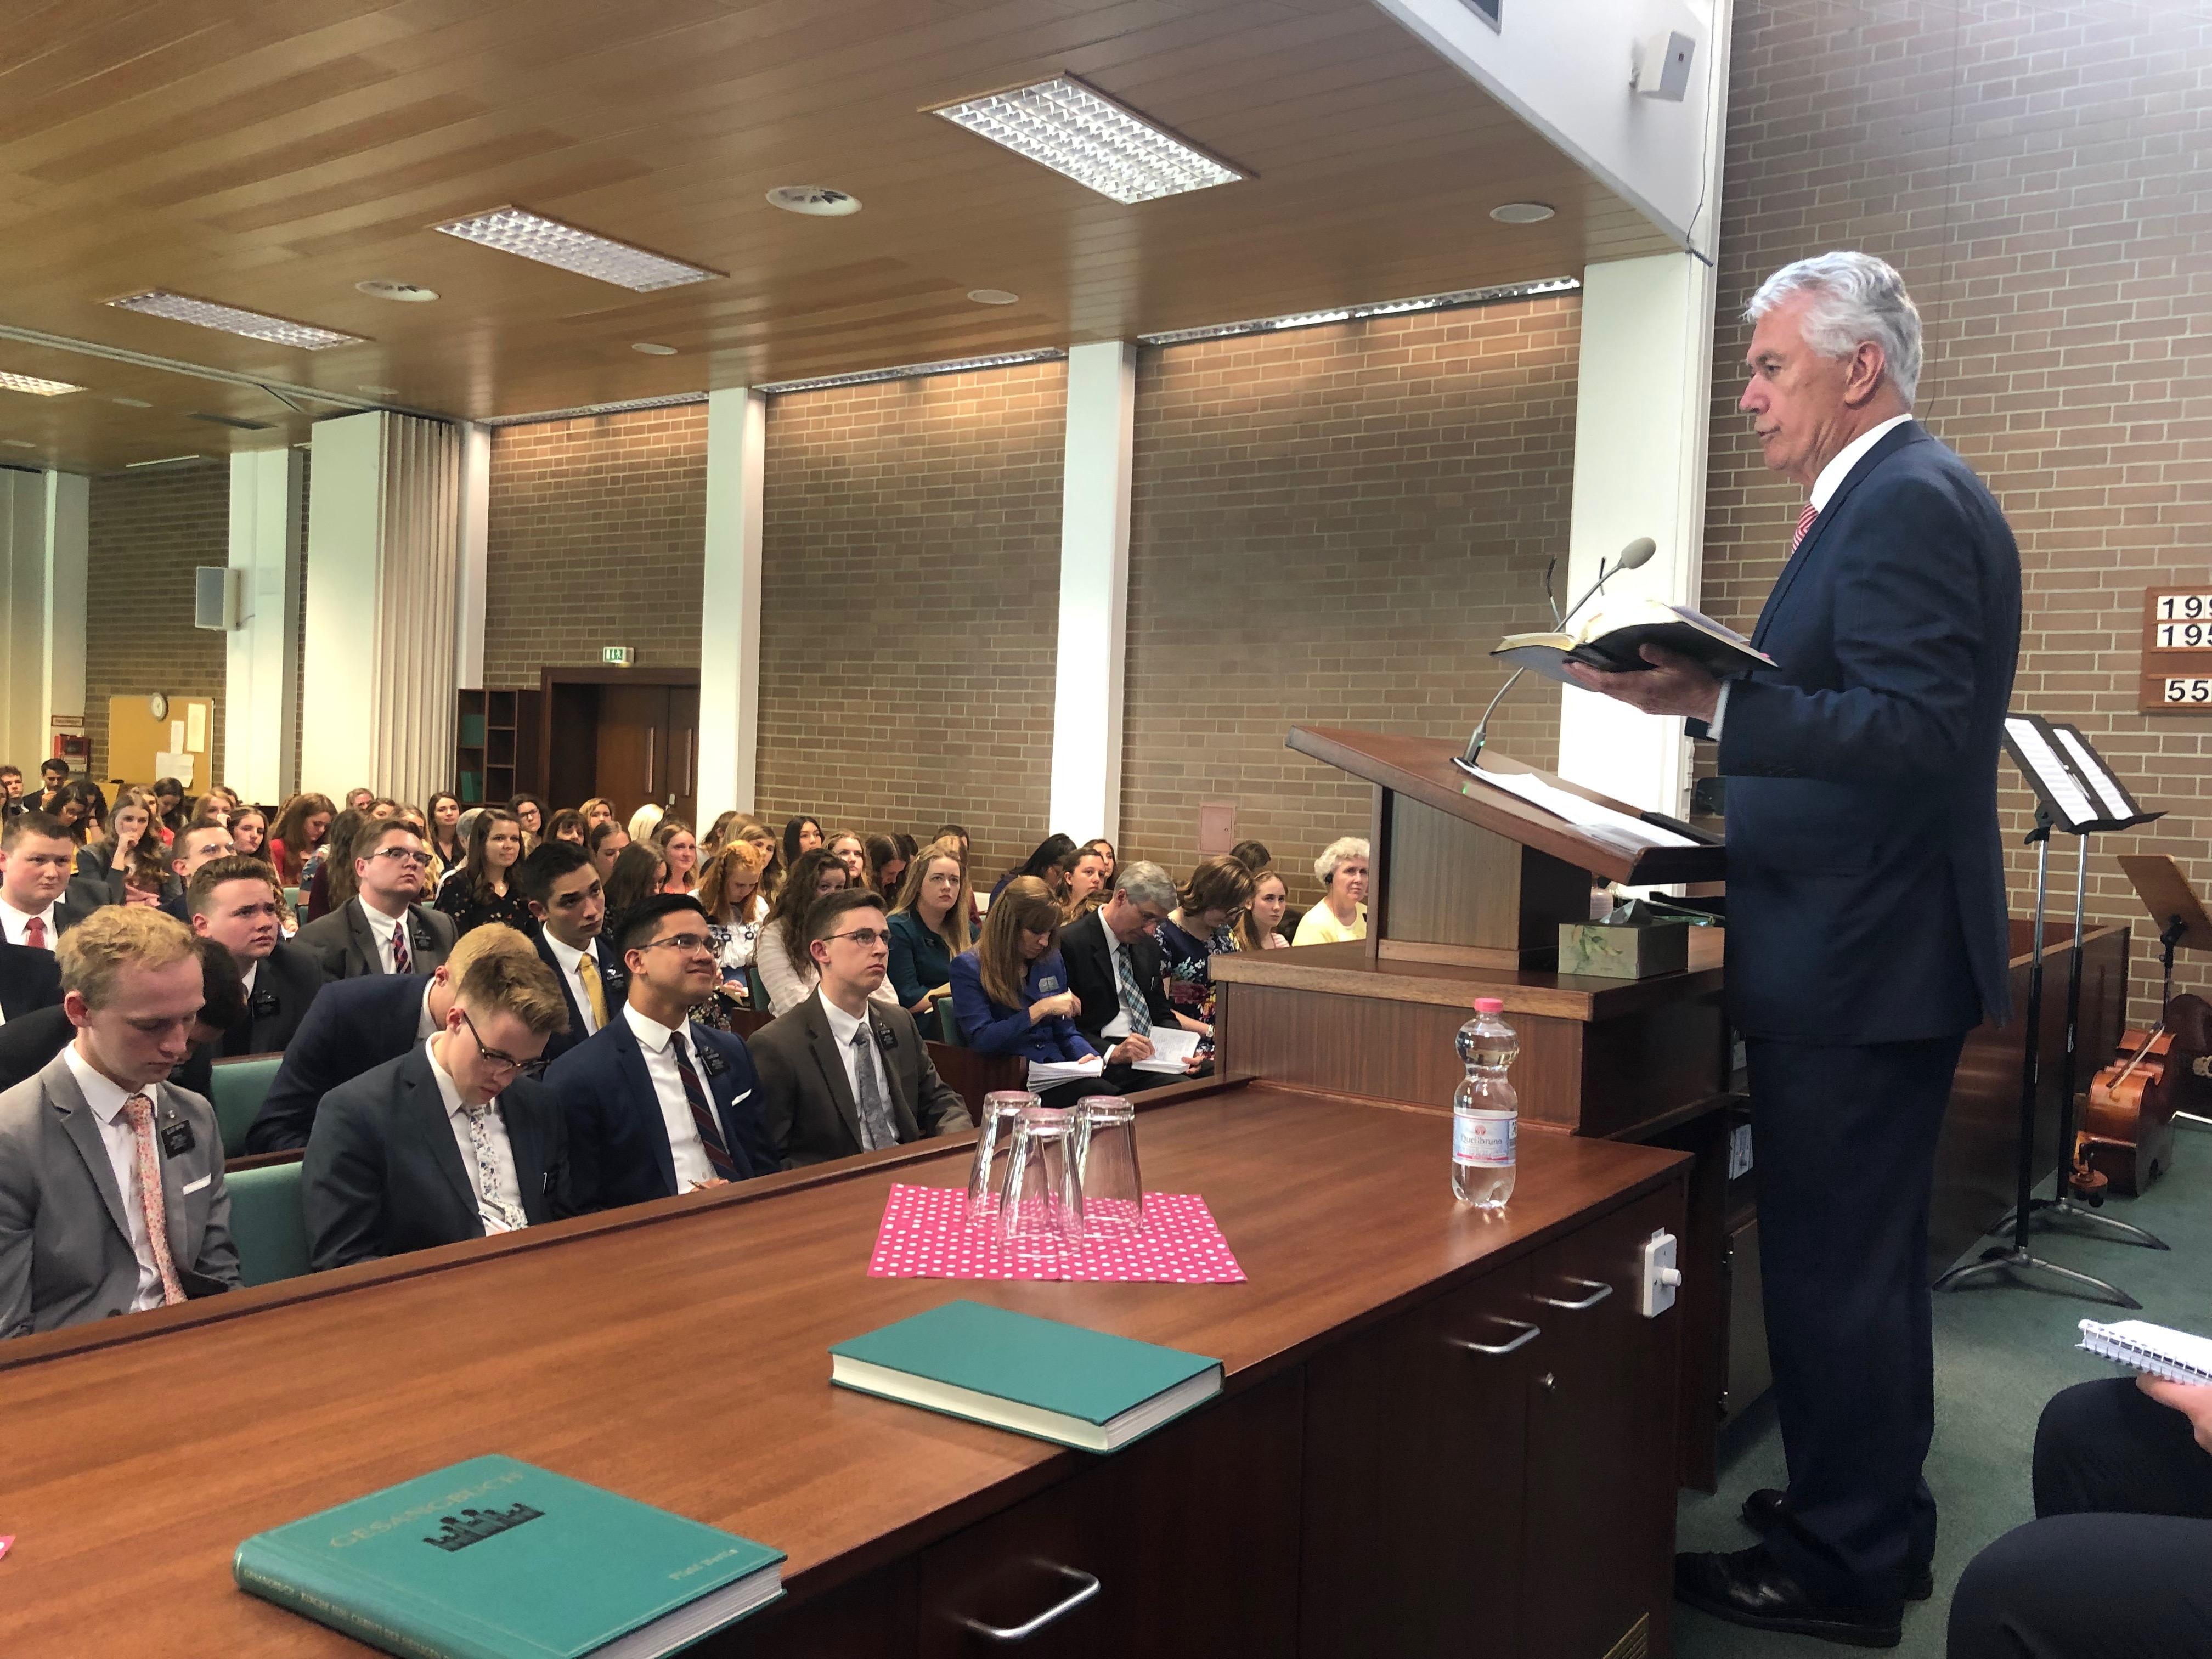 Elder Dieter F. Uchtdorf speaks to missionaries of the Germany Berlin Mission during a mission conference in Berlin on April 26, 2019.